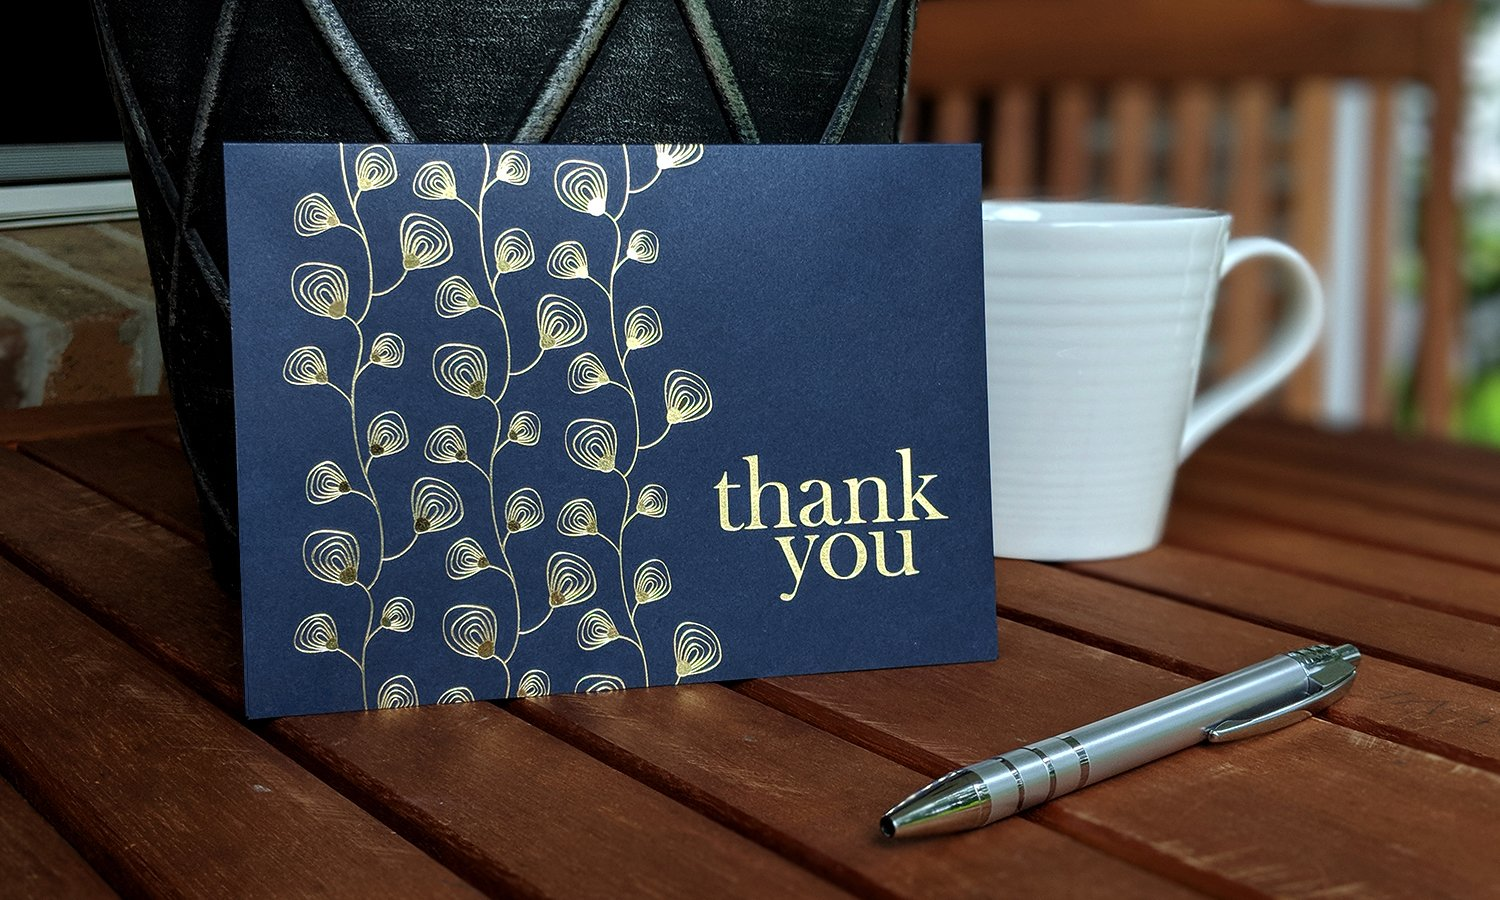 100 Thank You Cards Bulk - Thank You Notes, Navy Blue & Gold - Blank Note Cards with Envelopes - Perfect for Business, Wedding, Gift Cards, Graduation, Baby Shower, Funeral - 4x6 Photo Size by Spark Ink (Image #4)